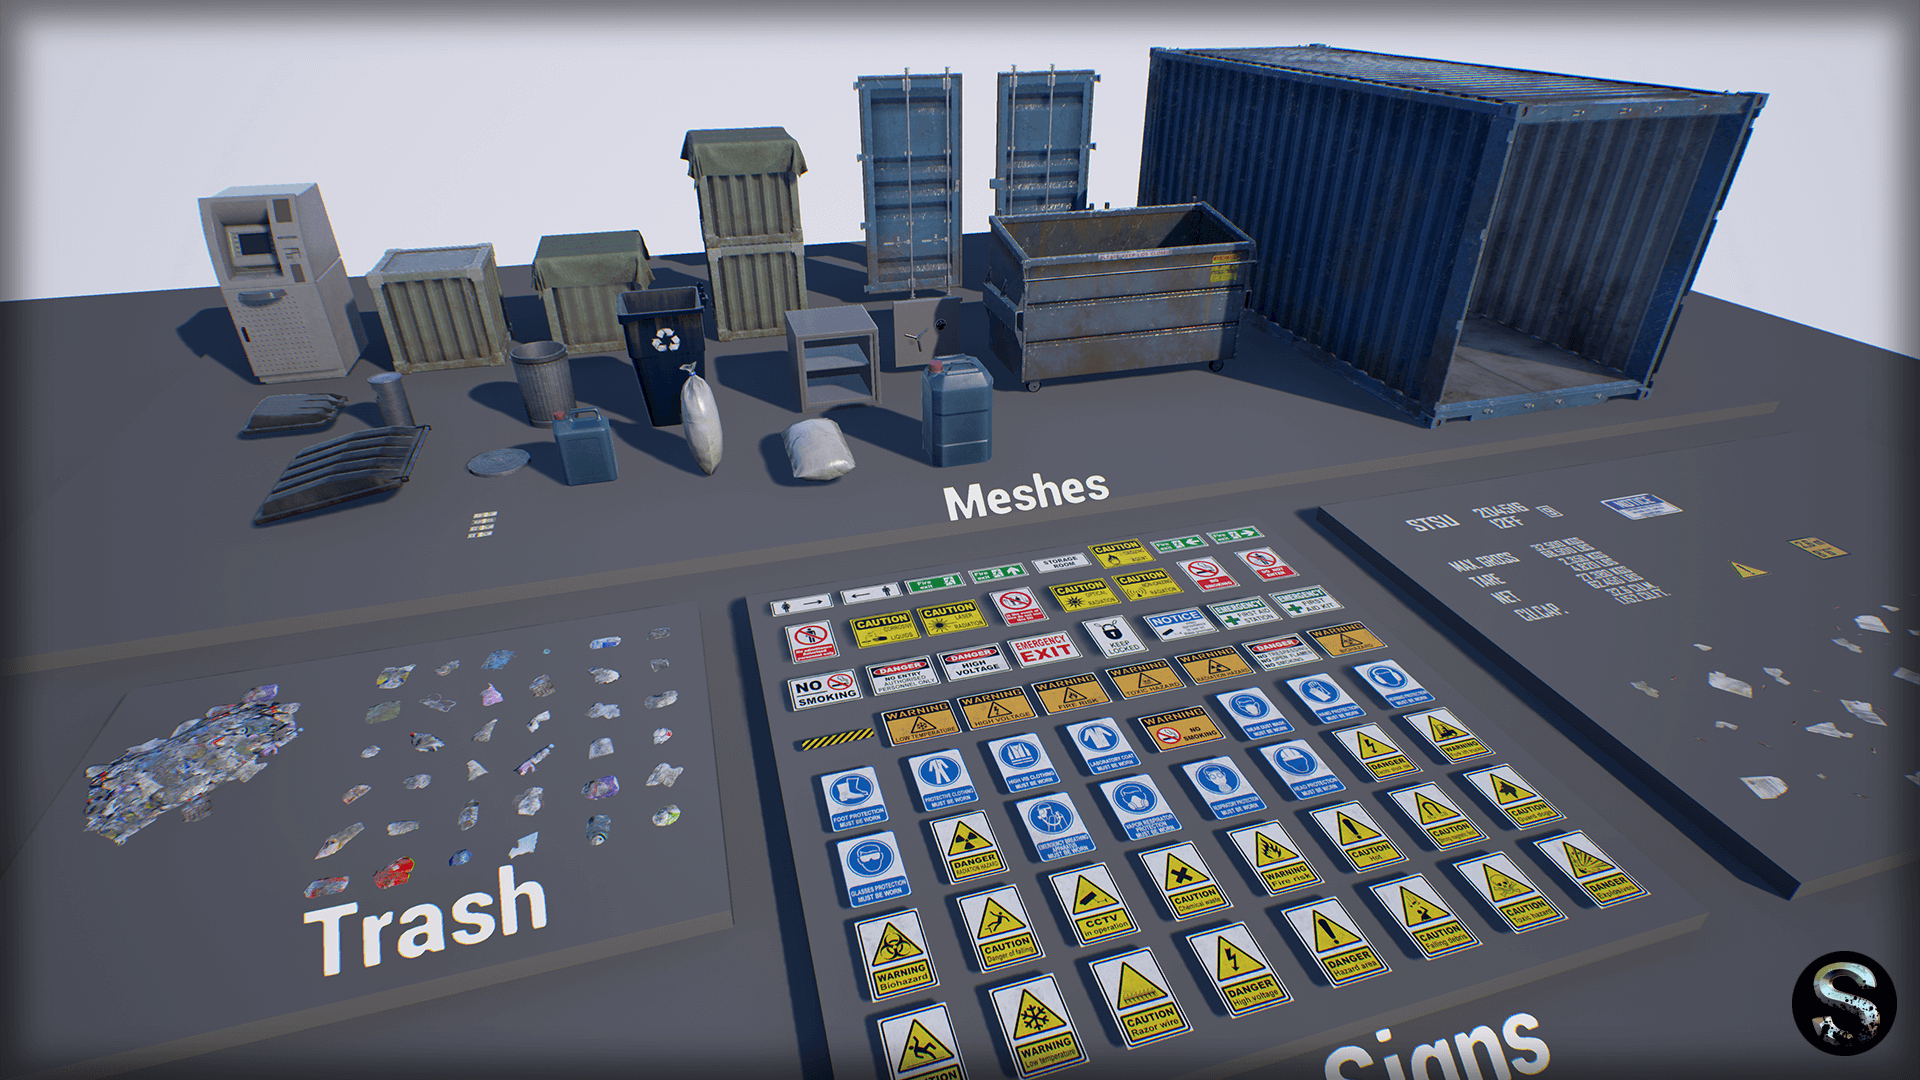 Industry Props Pack 4 by SilverTm in Props - UE4 Marketplace   UE4